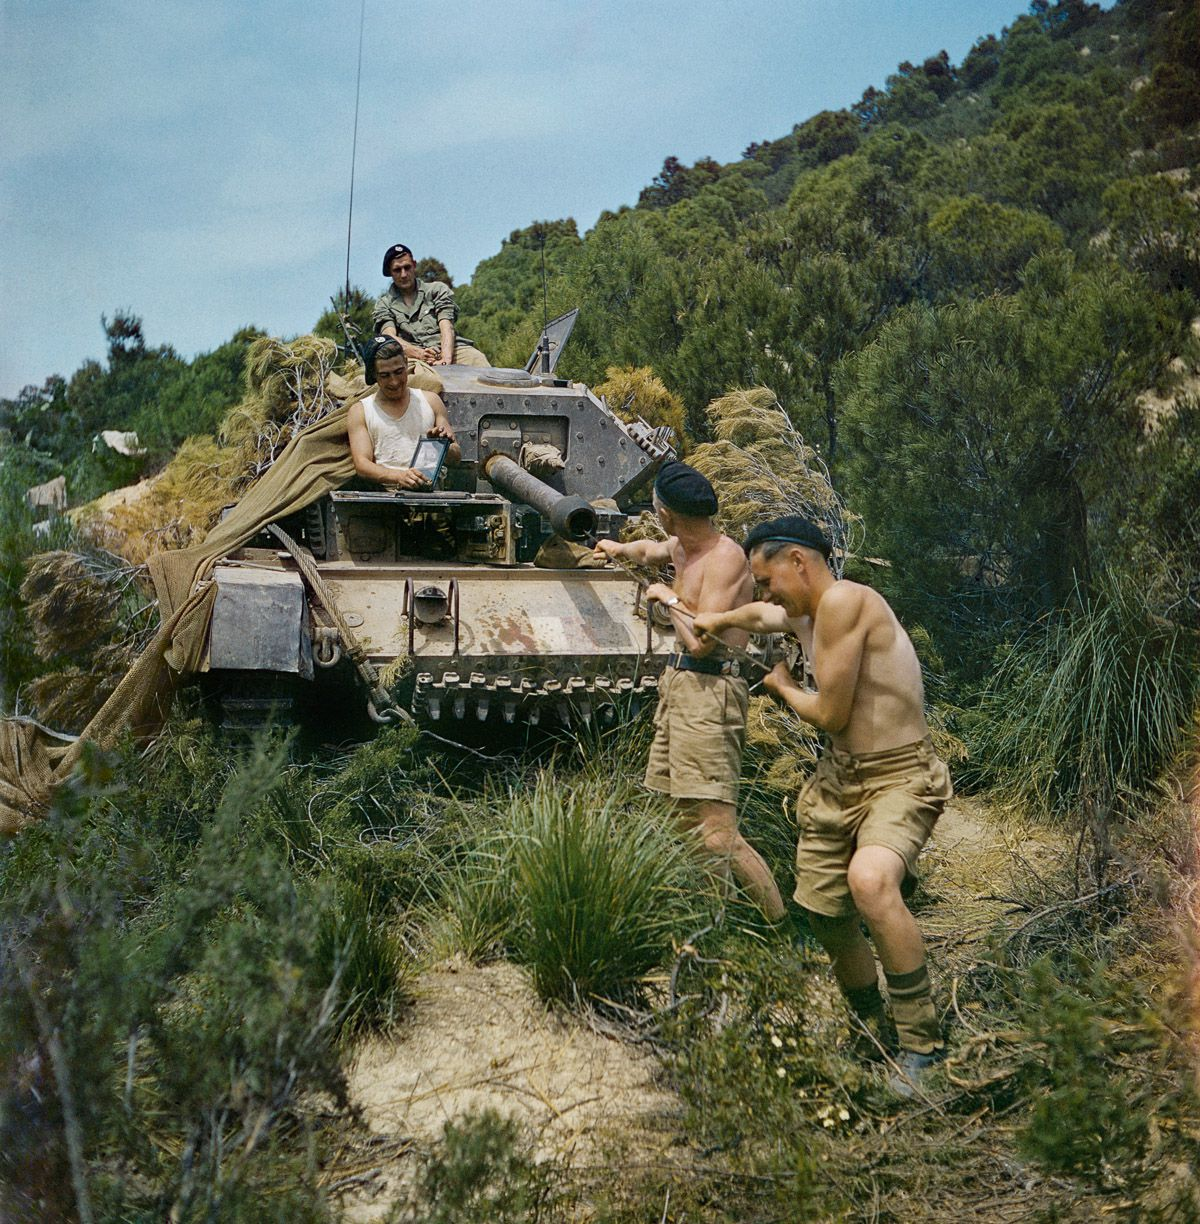 May 1943 A crew from the 16th:5th Lancers, 6th Armoured Division, clean the gun barrel of their Crusader tank at El Aroussa in Tunisia.